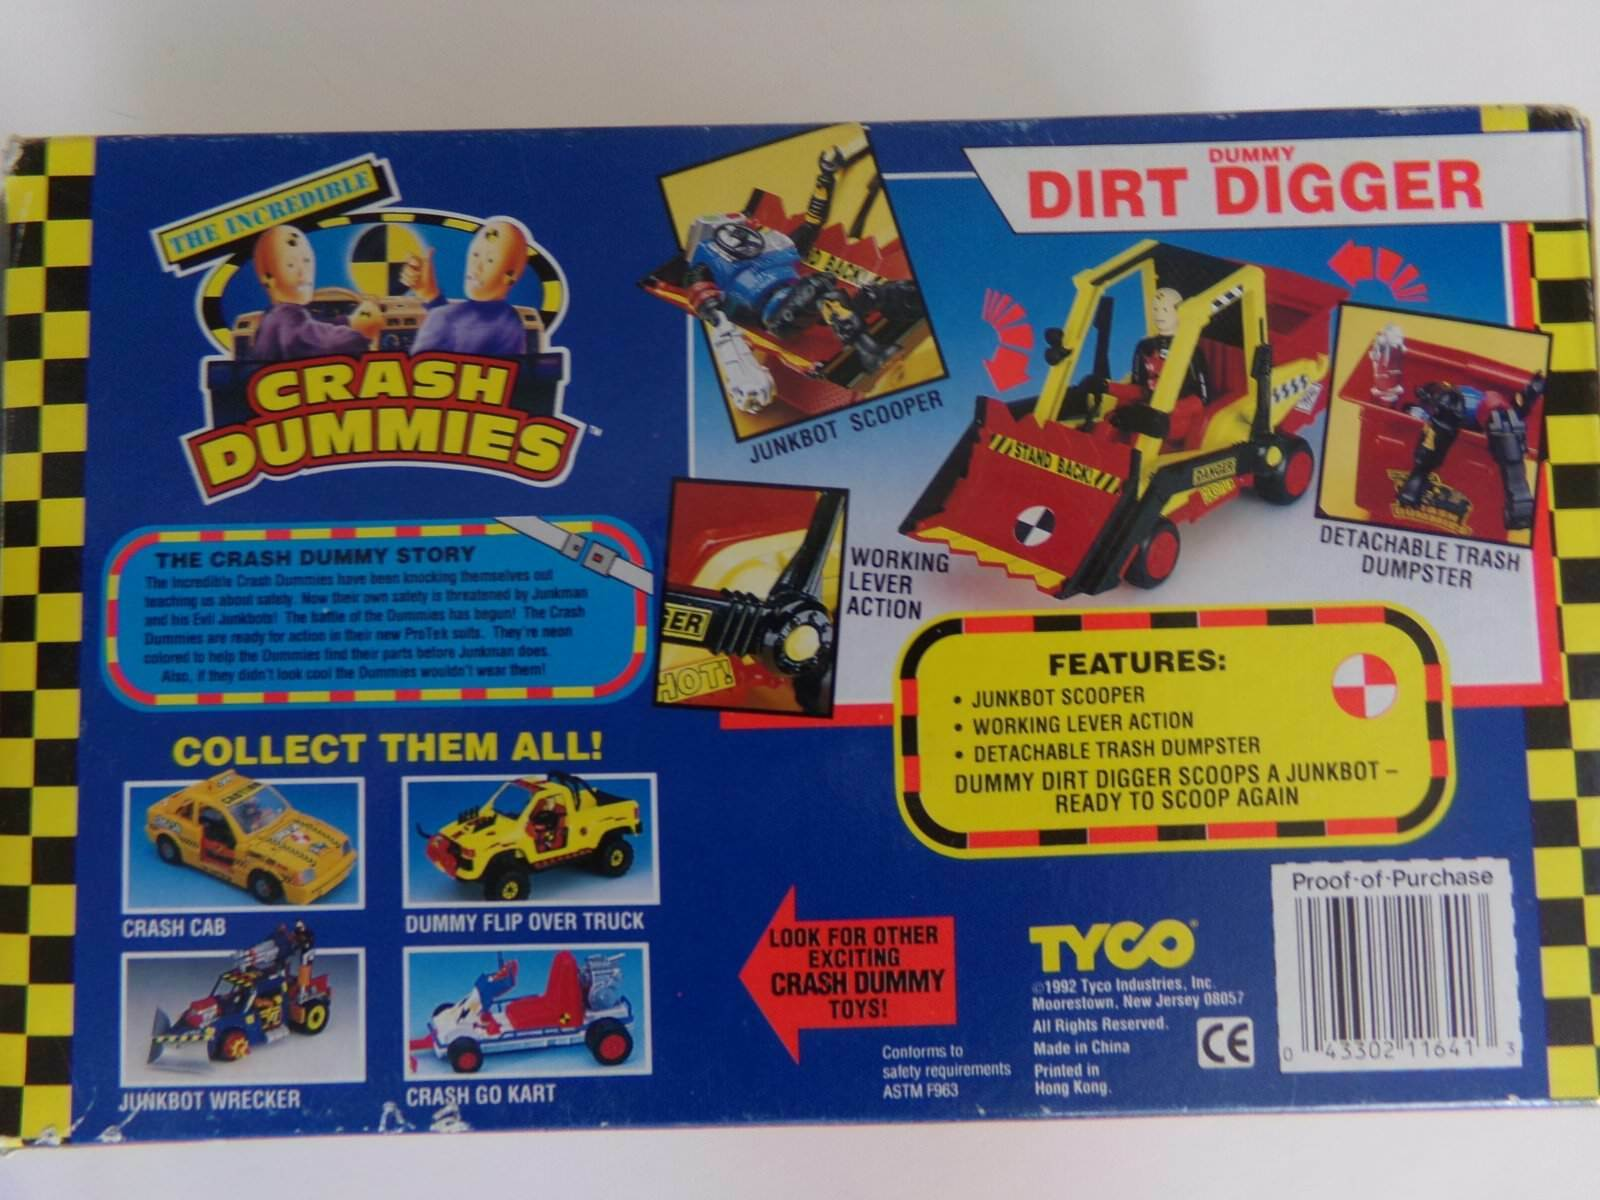 NIB 1992 TYCO TYCO TYCO Incredible Crash Test Dummies DUMMY DIRT DIGGER 100% Complete NOS 588776